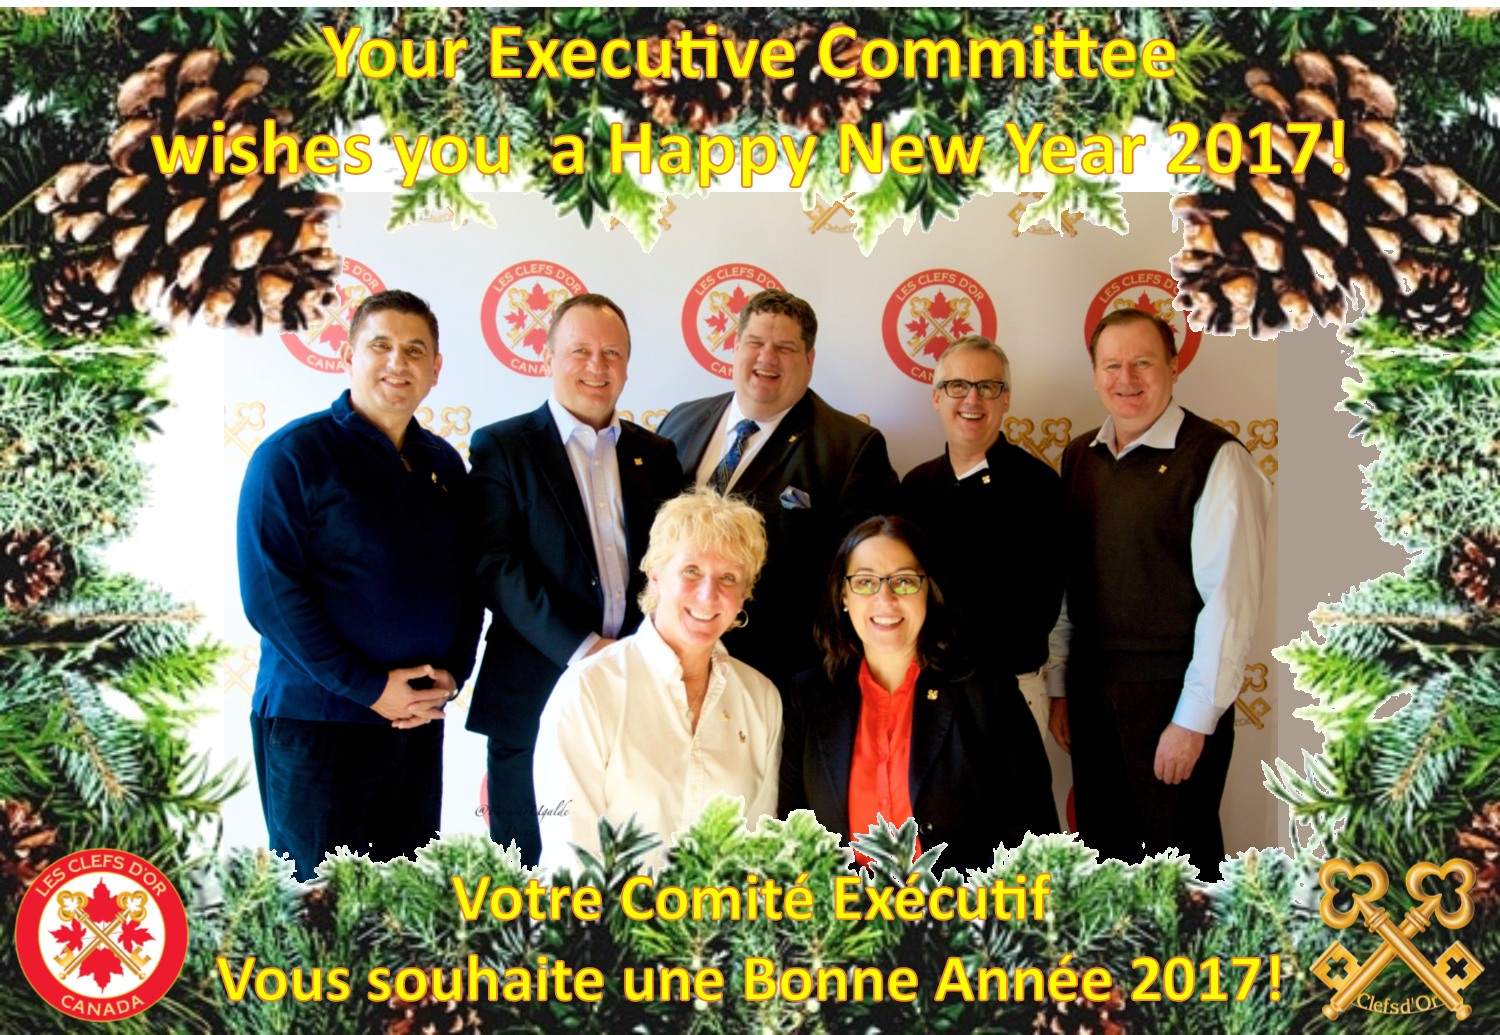 exec-comm-happy-new-year-2017